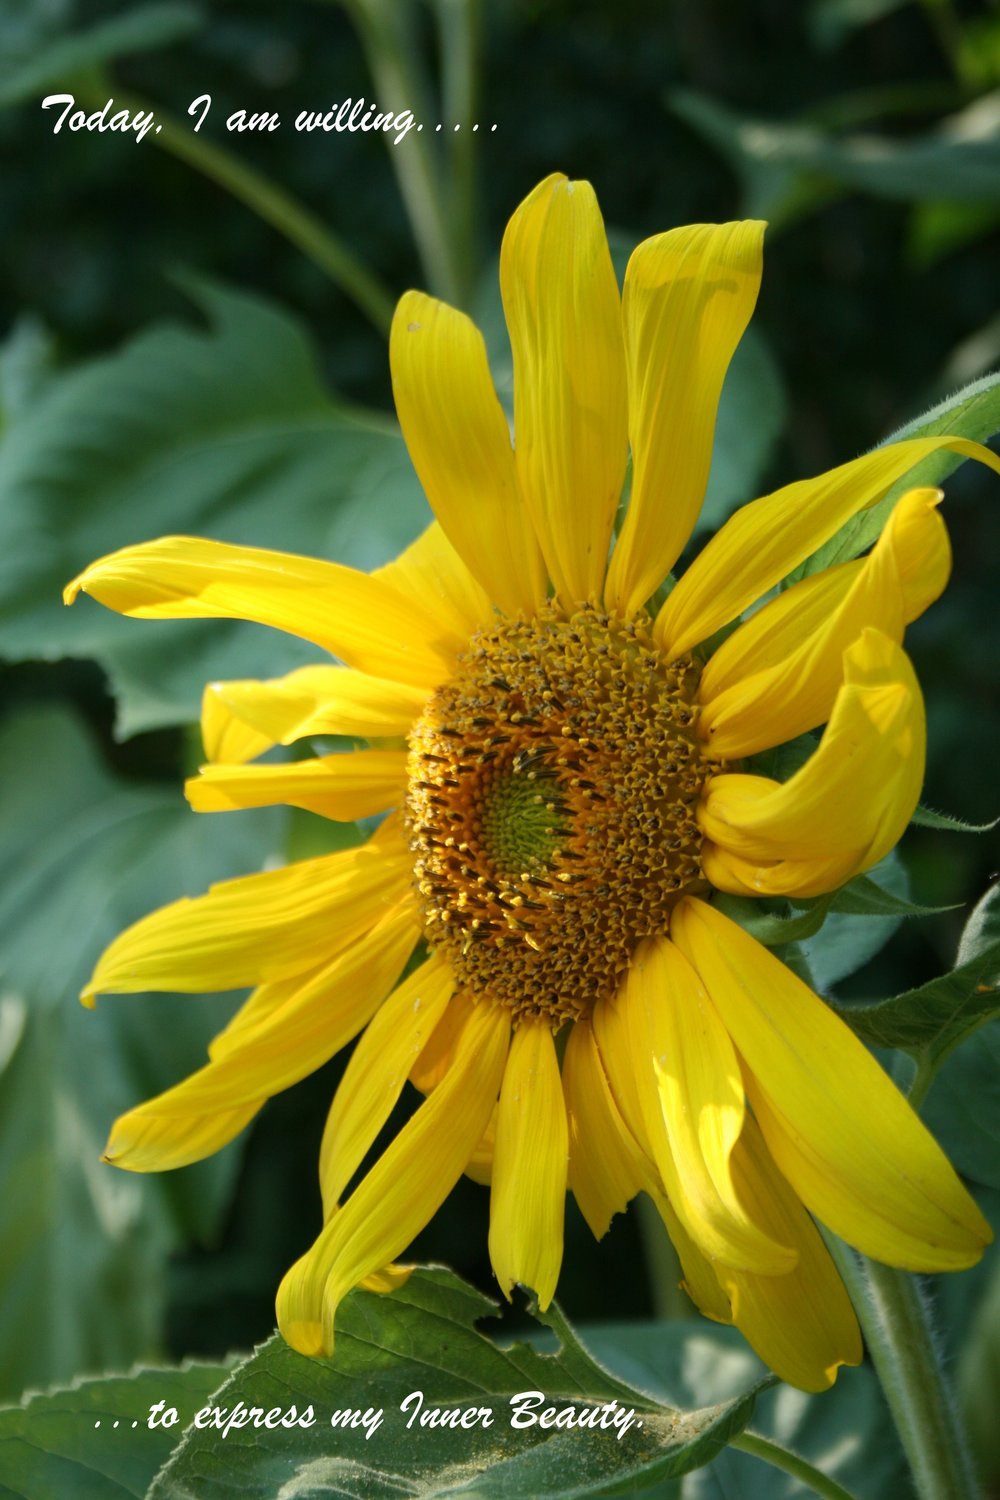 Sunflower_Willing_Express Inner Beauty.jpg